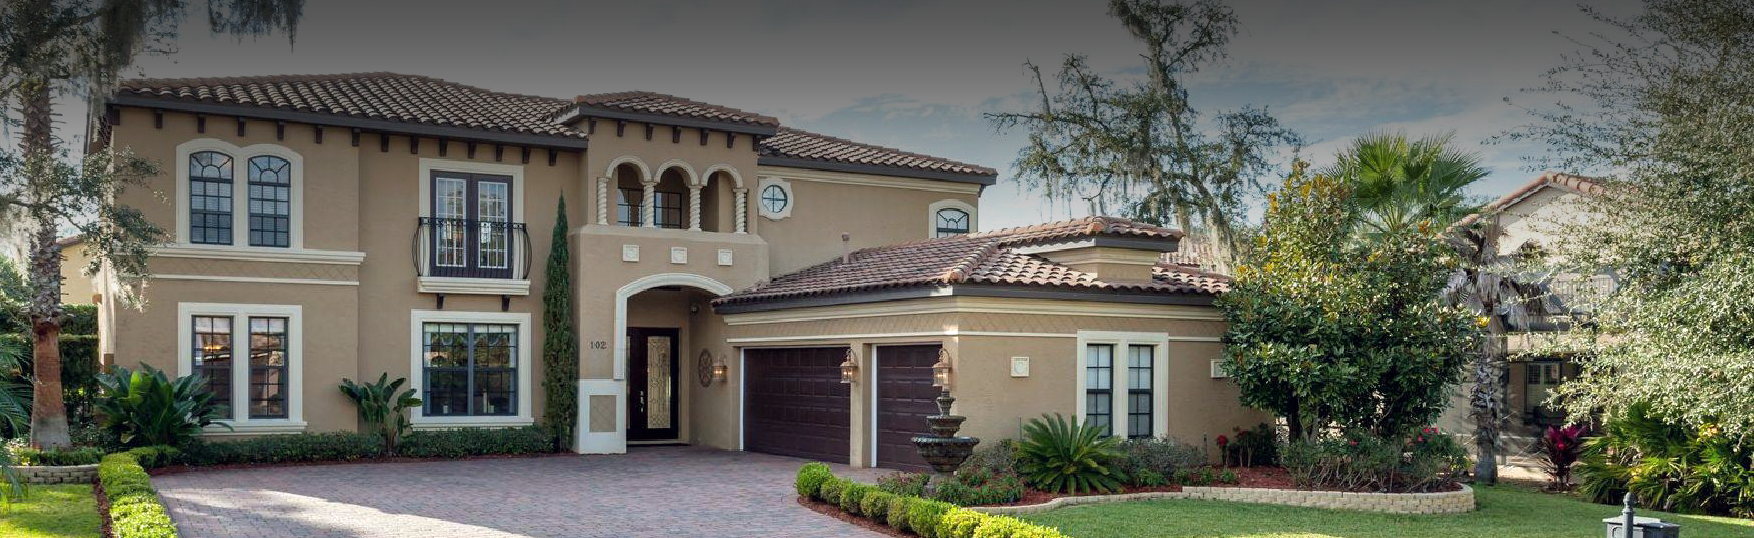 Florida Home Inspections provided by US Inspect - Serving Cental Florida